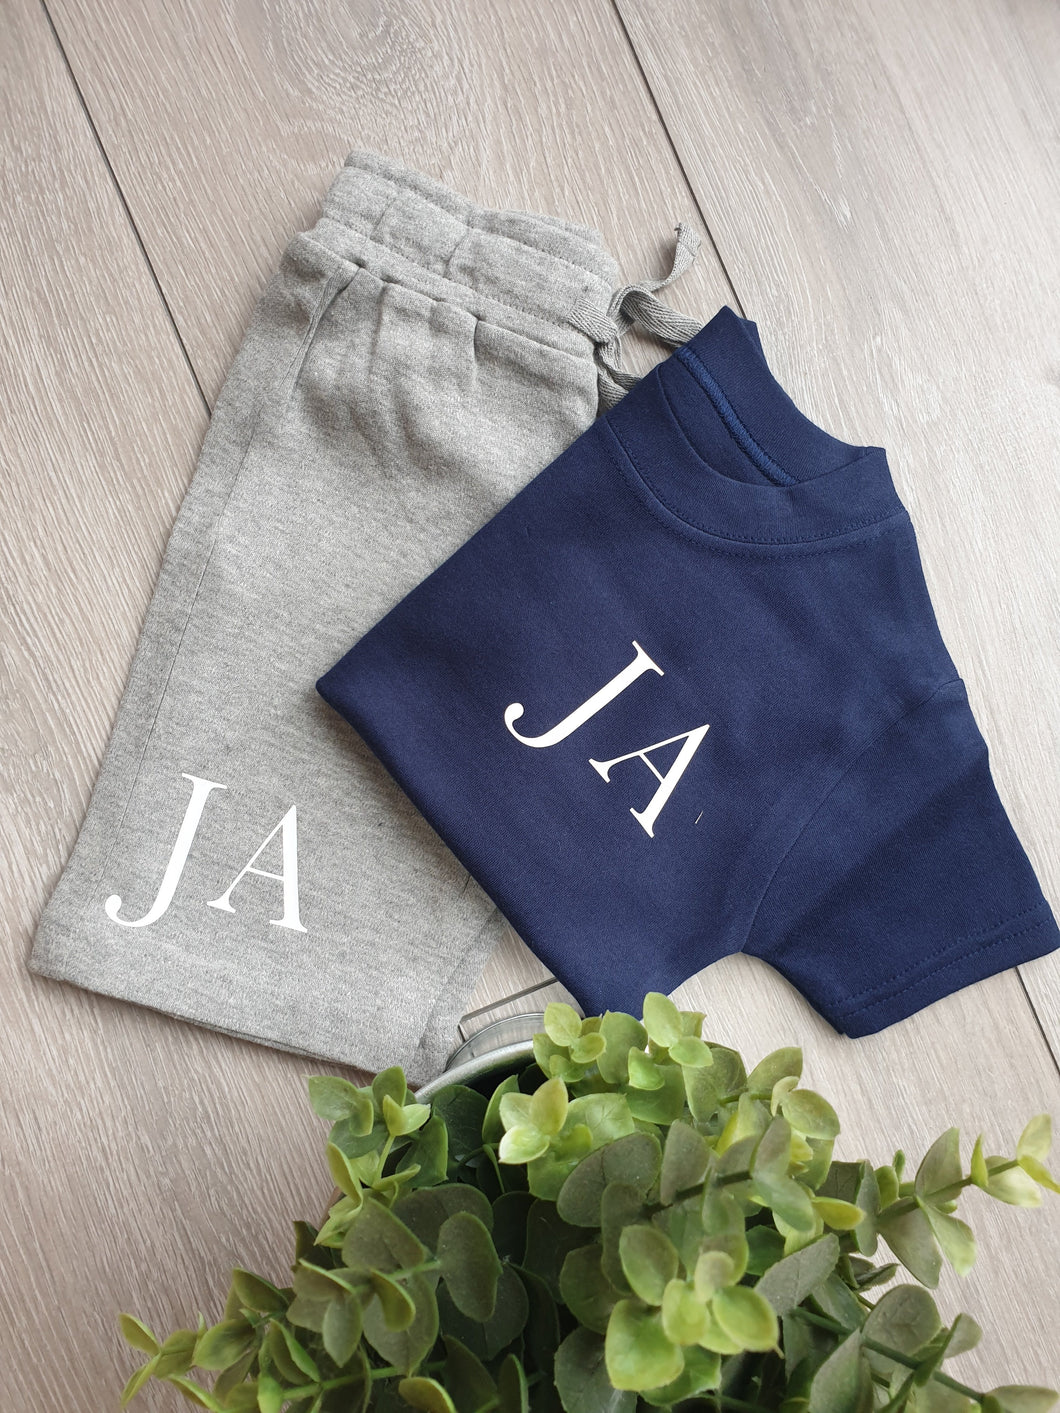 Initial Shorts and Tee Set